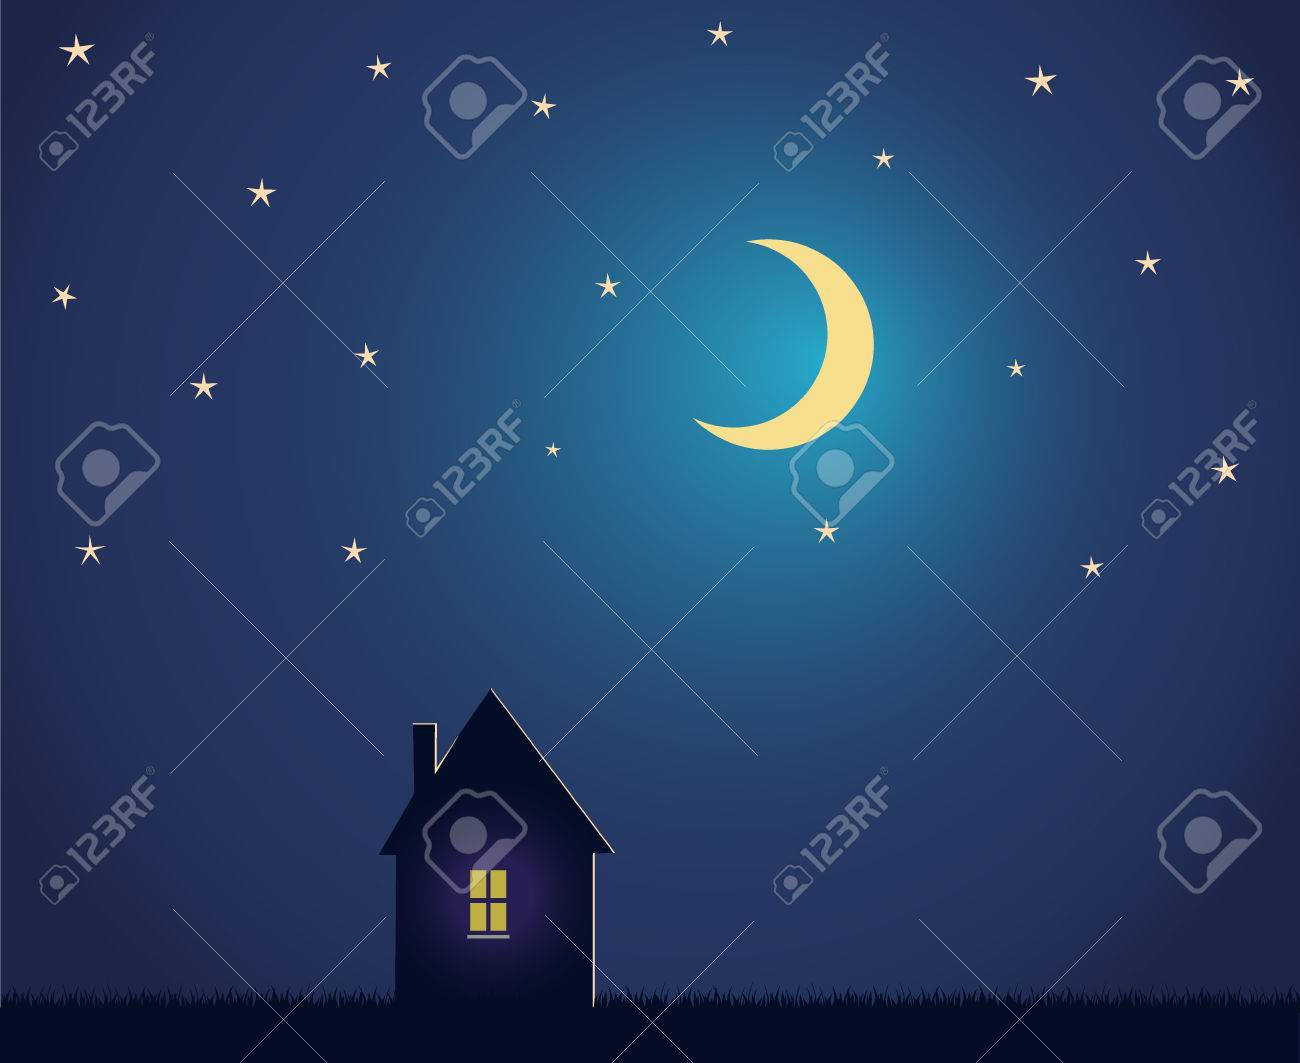 House and night sky with stars and moon. - 31104820